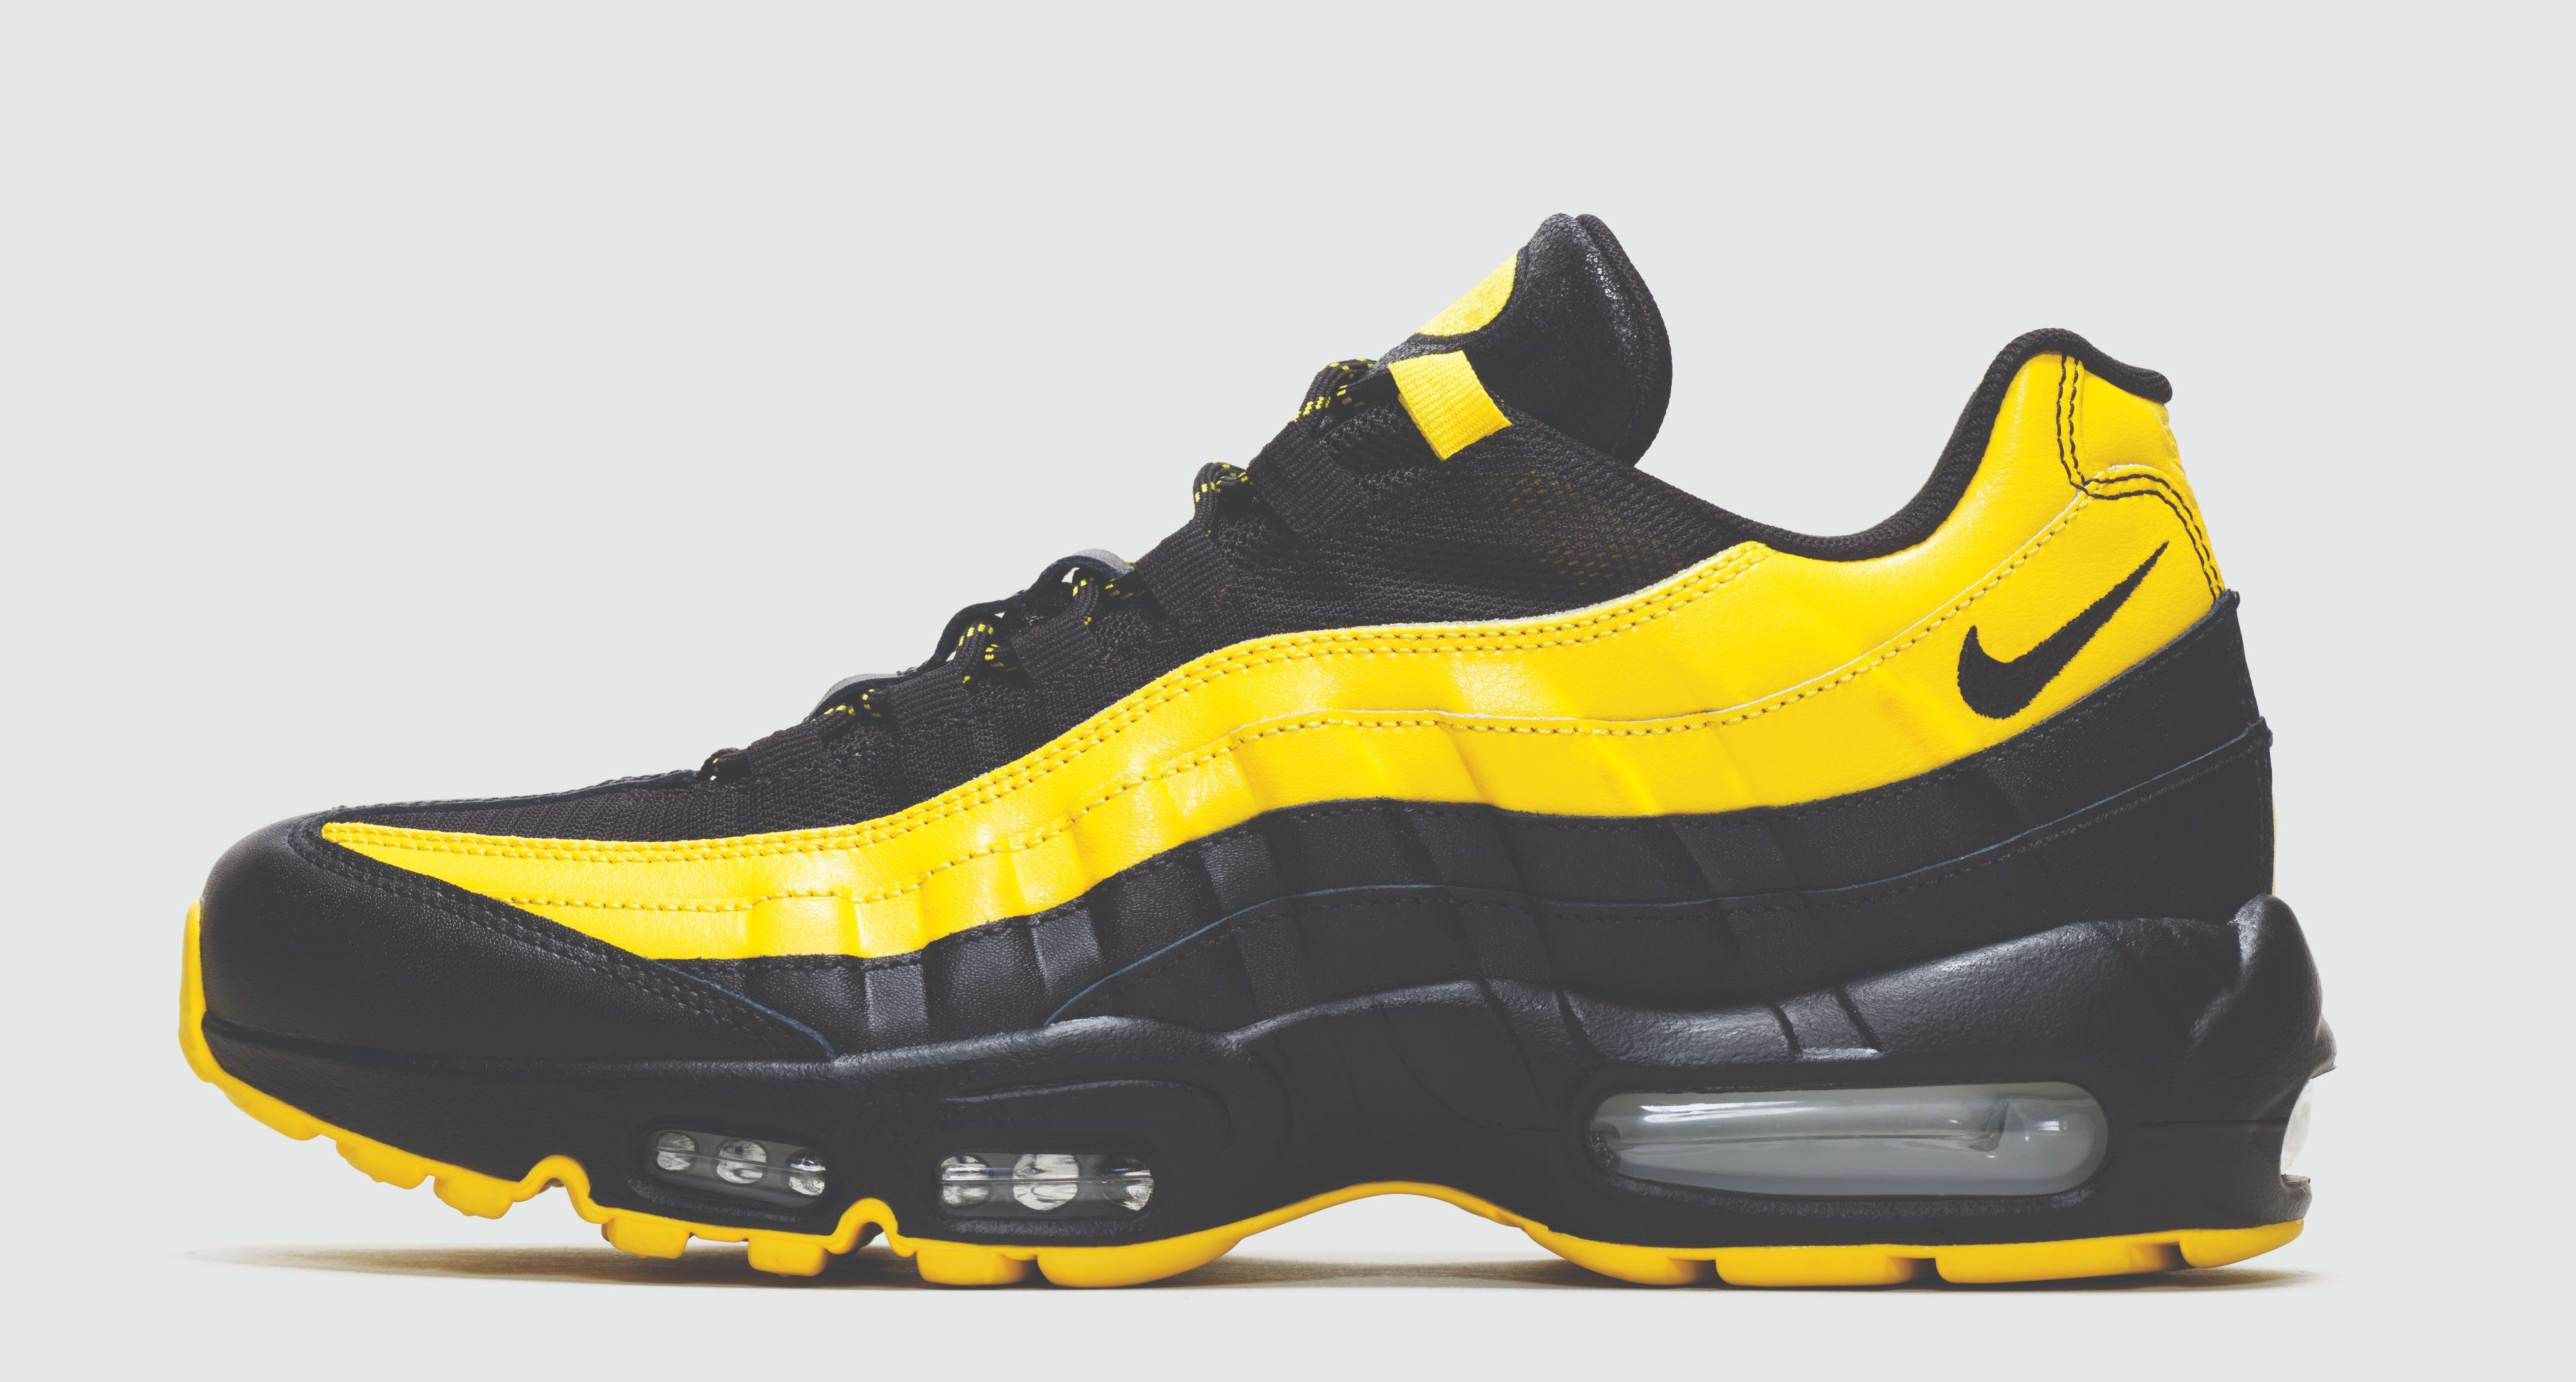 reputable site ba035 028e1 coupon for nike air max 95 golden foot locker dc989 98949